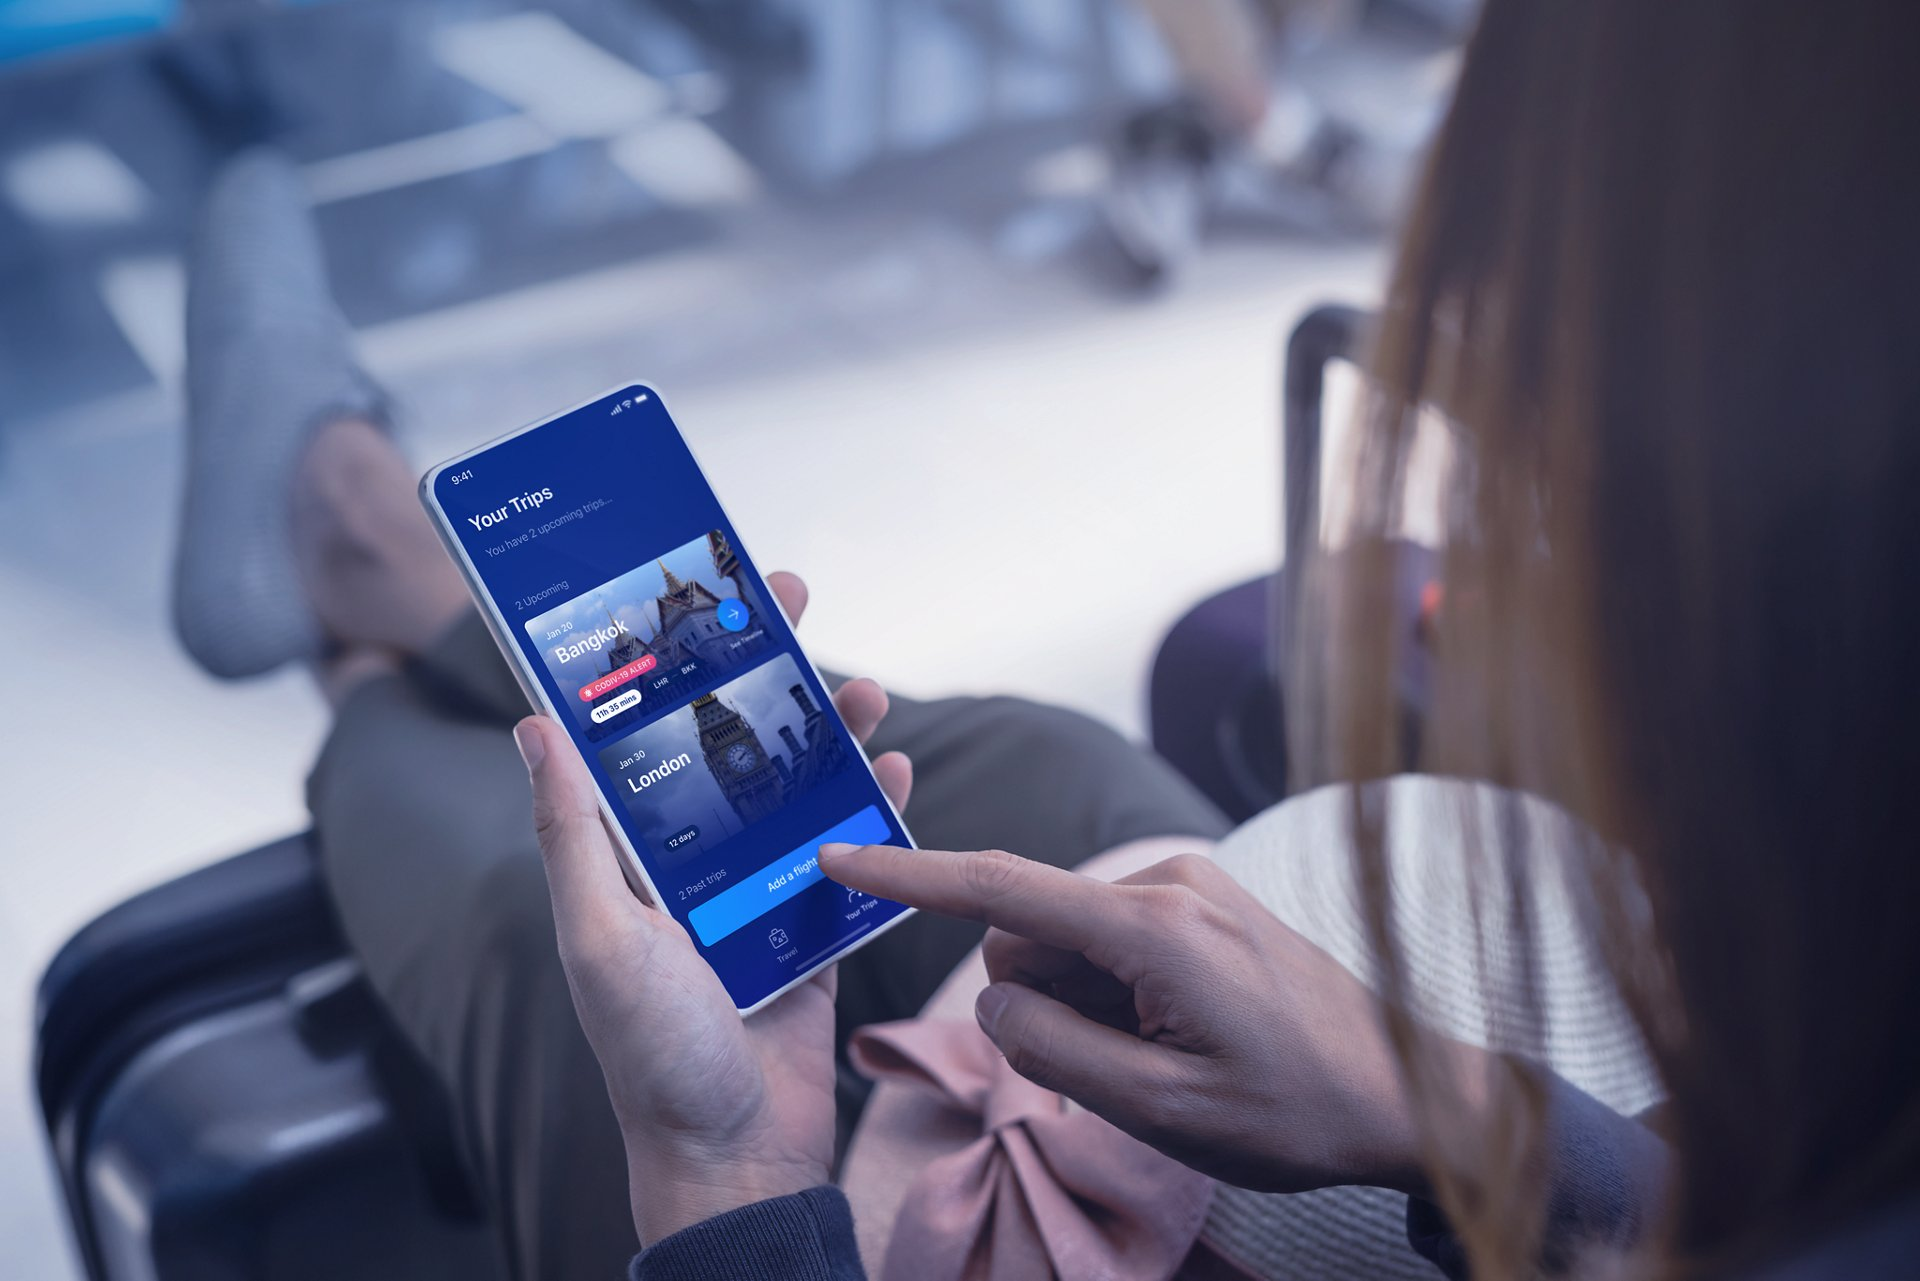 All information in Airbus' Tripset travel companion app is provided in an agnostic manner; no matter the airport, airline, flight number or aircraft type